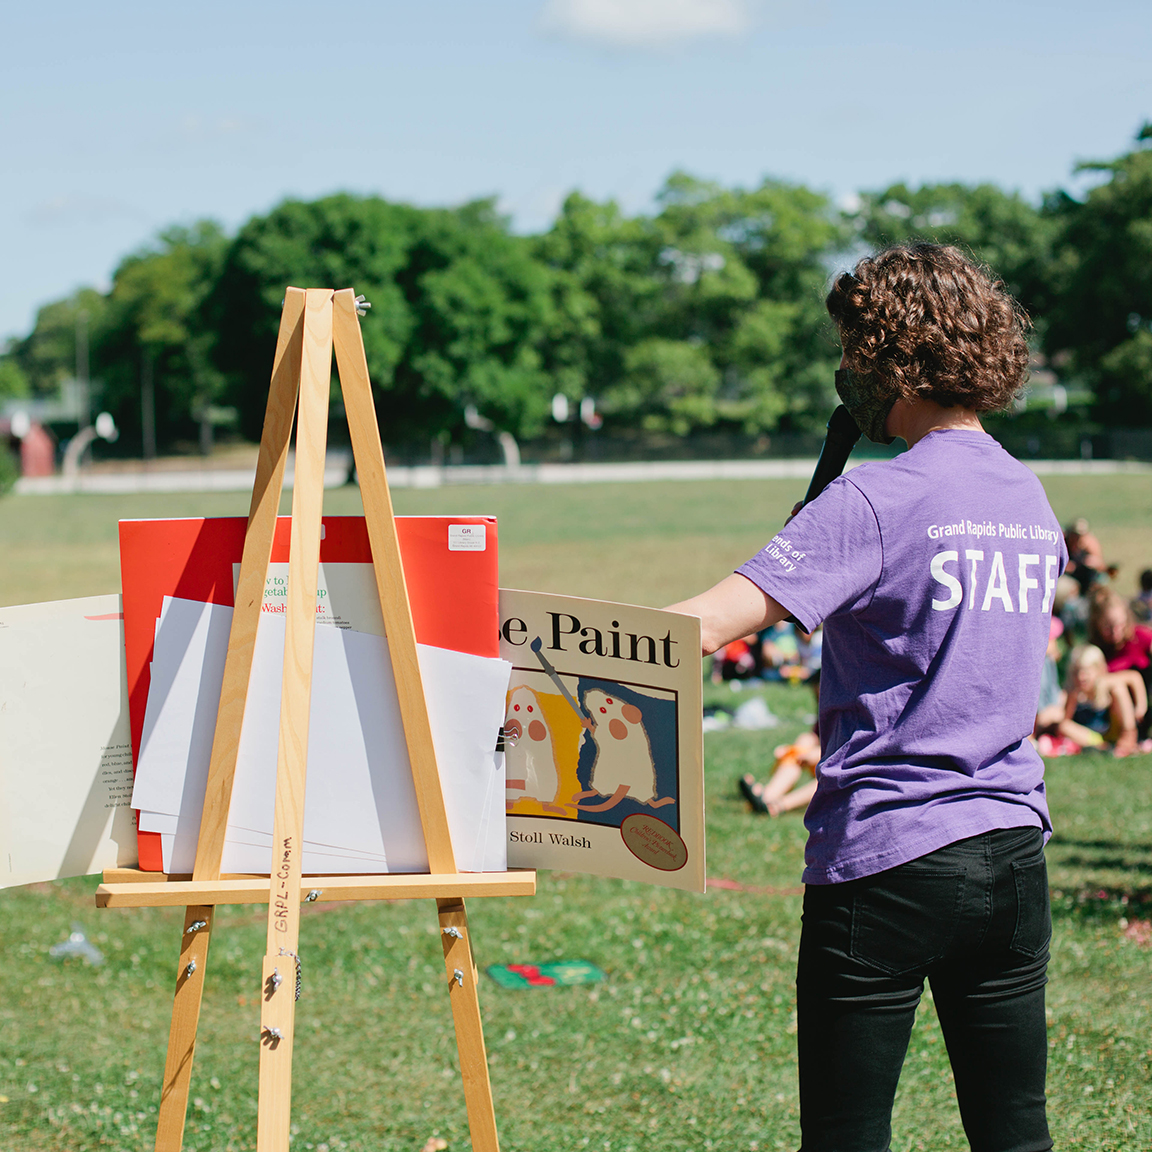 🍂 📚 Save the date! On Monday, October 12 at 11:00 am, join us for a fun and socially distanced outside storytime at Lincoln Park. Enjoy stories, sing-along-songs, and rhymes with a take-home kit activity for every child. Masks encouraged.